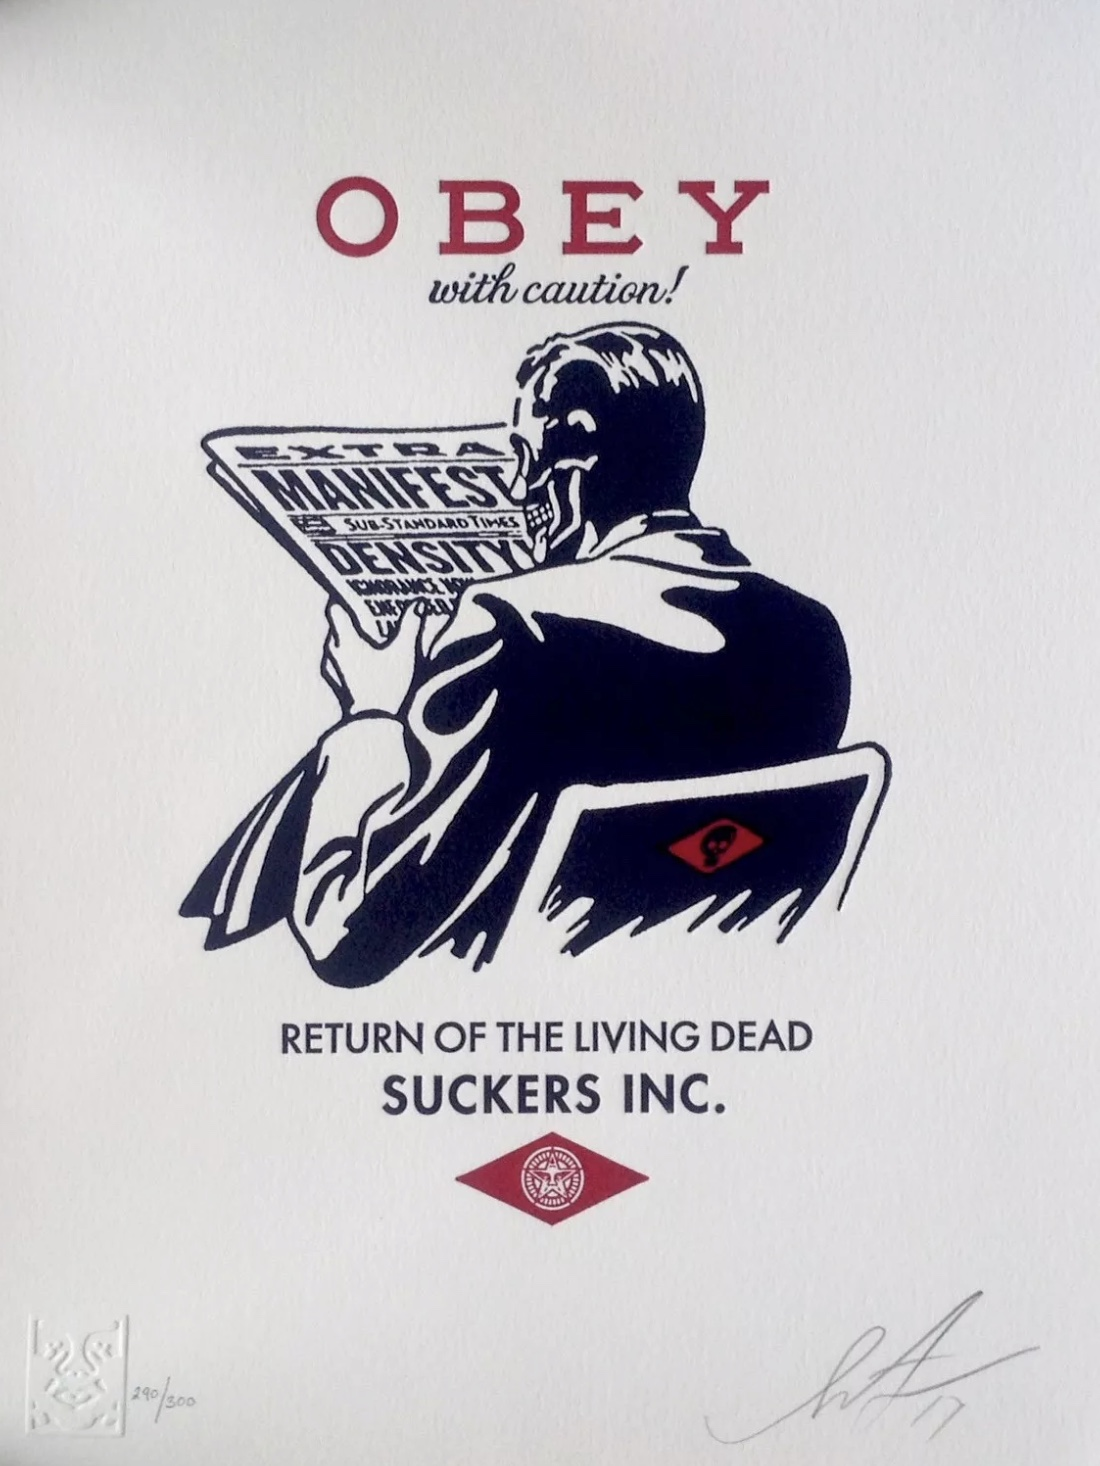 Obey with caution!